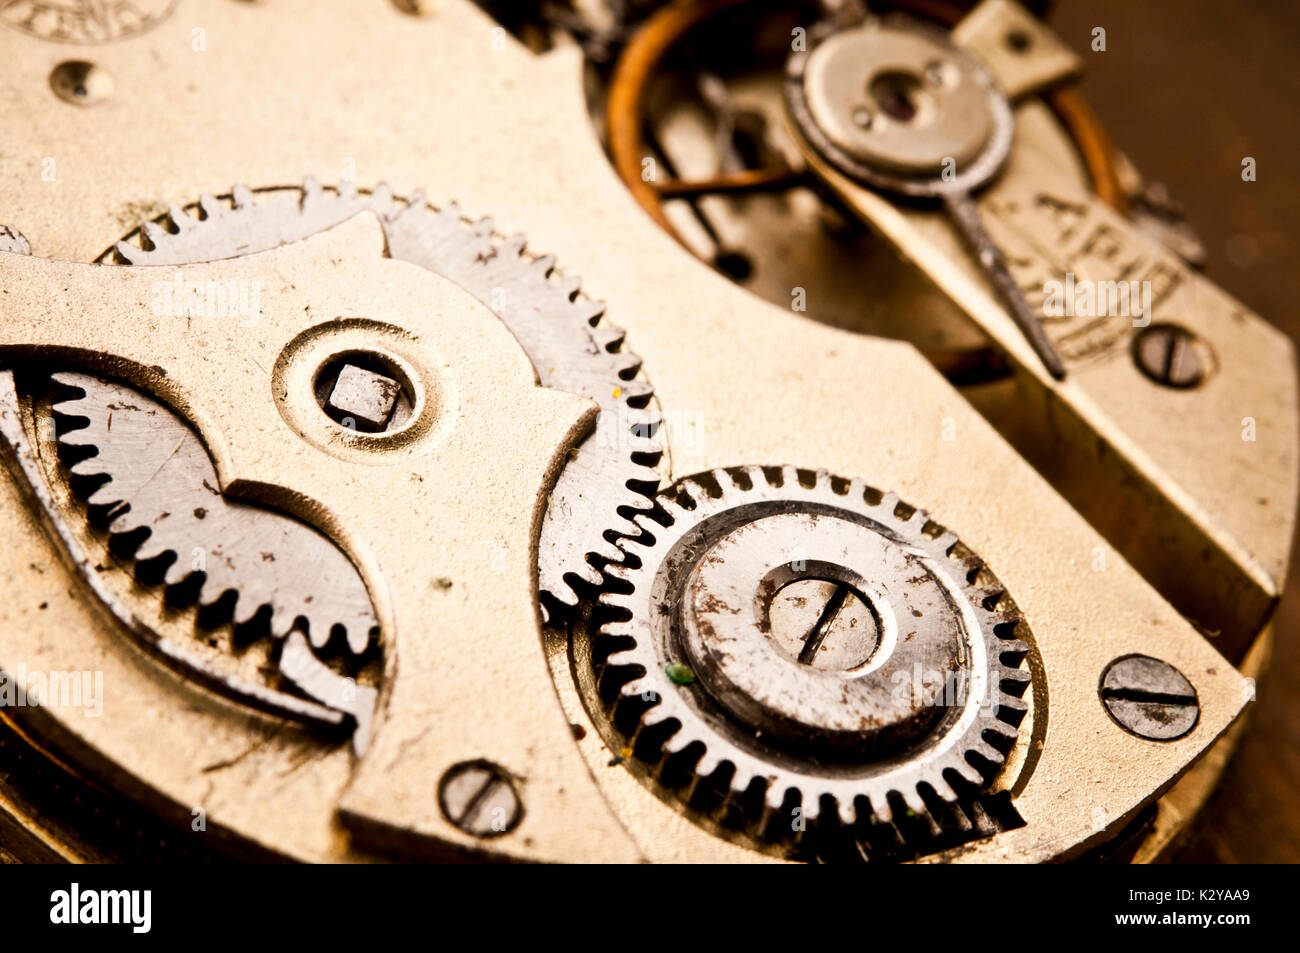 macro detail of the mechanism of a clock - Stock Image